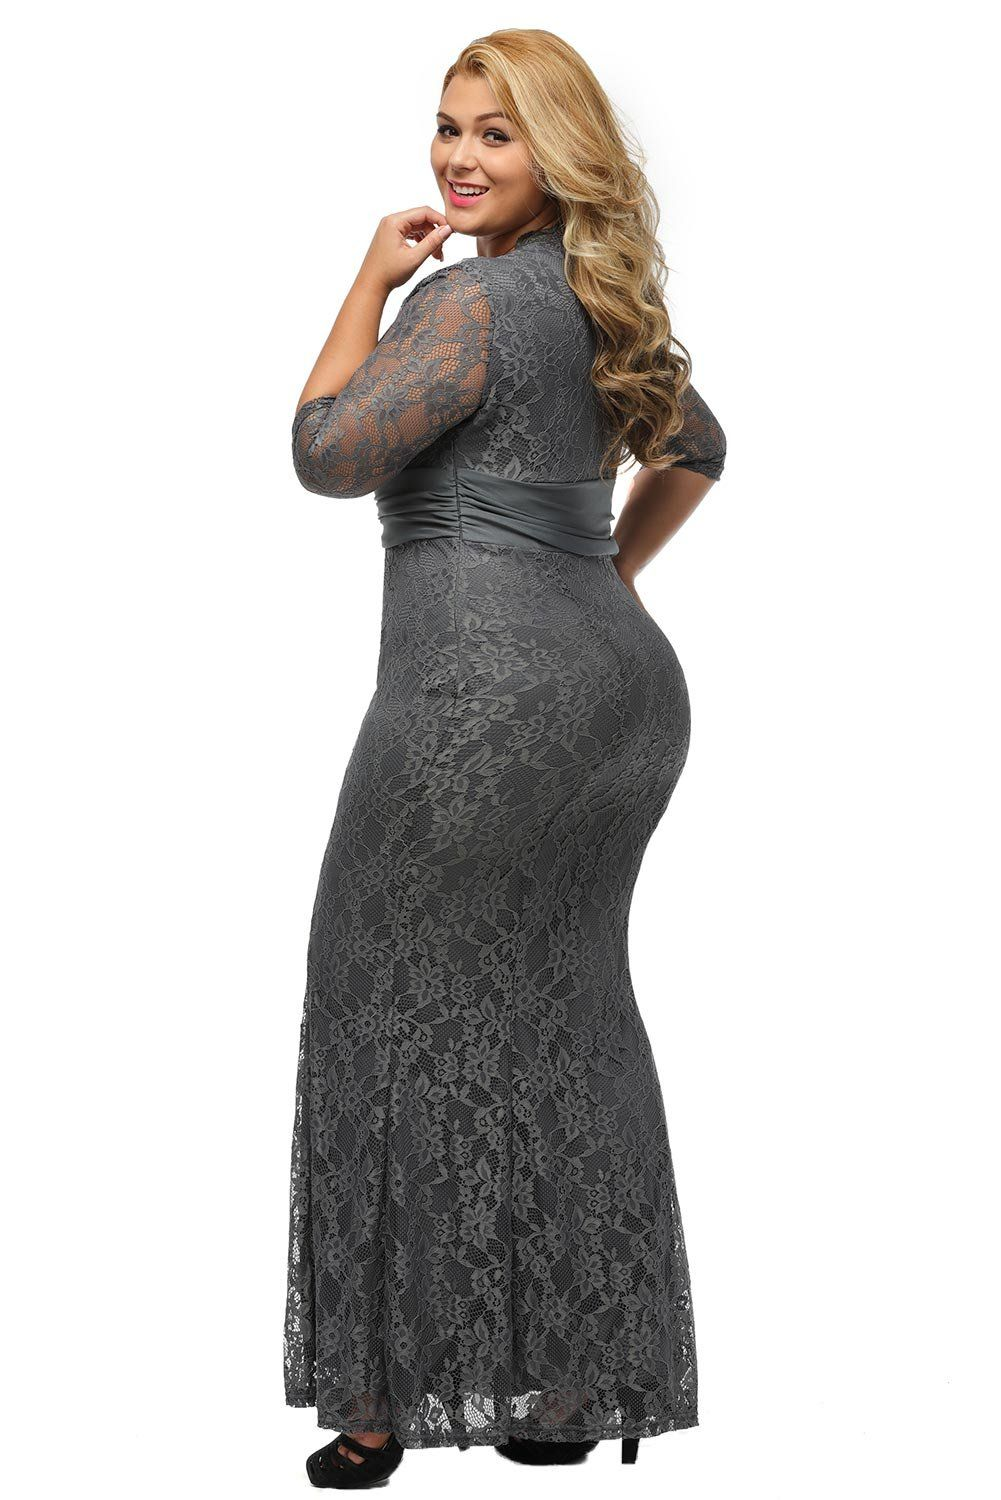 25308d519ba05 XAKALAKA Womens VNeck 3 4 Sleeve Plus Size Lace Wedding Cocktail Dress Size  Grey 2X -- Take a look at the picture by seeing the web link.